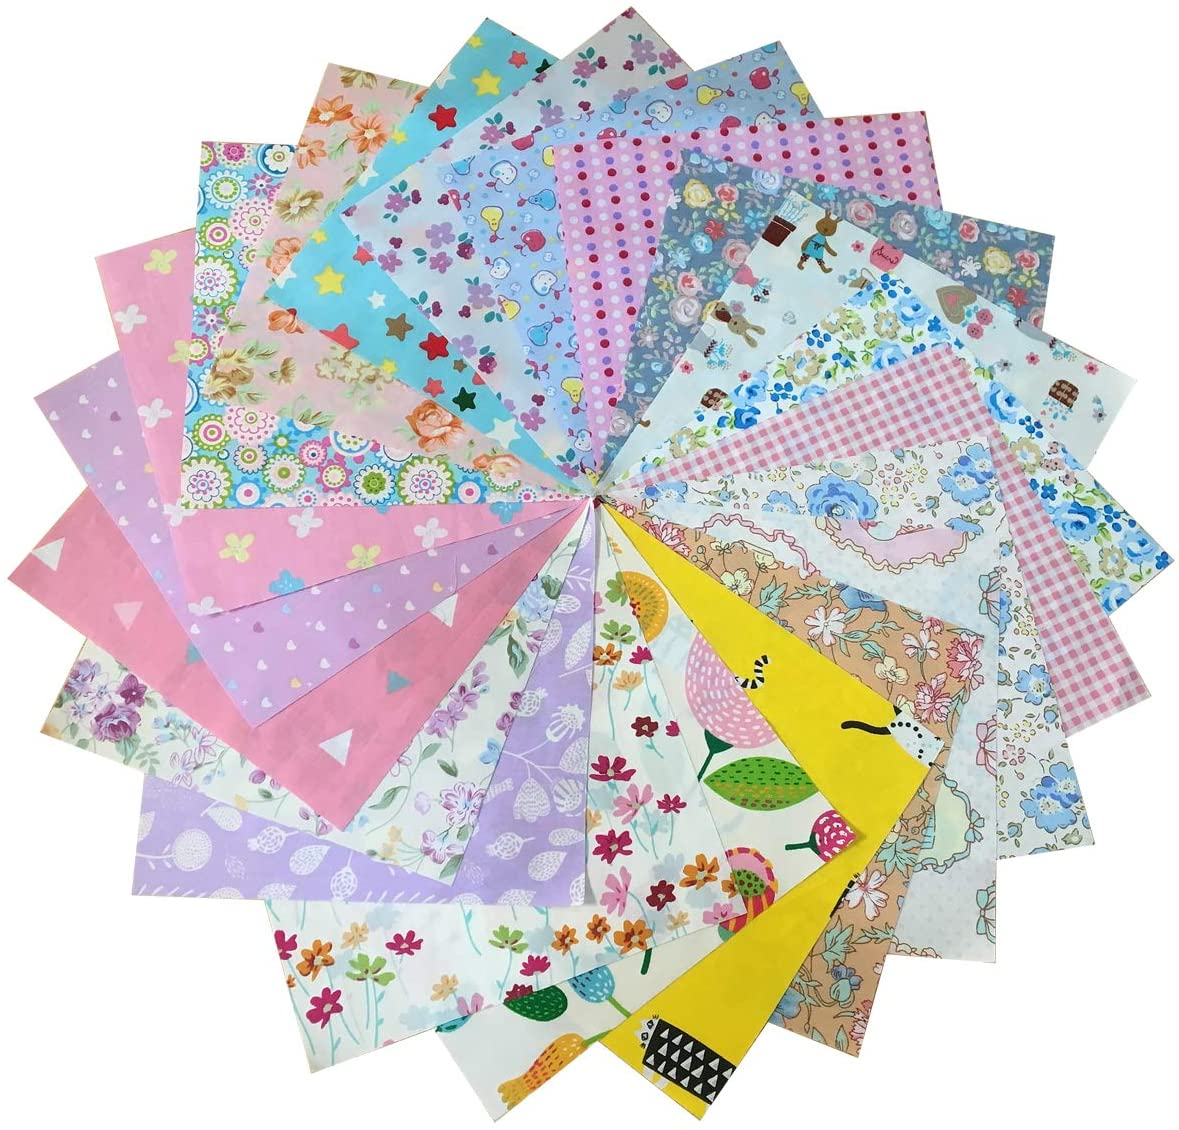 ANDRIMAX 50pcs Patchwork Different Patterns Floral Fabric Bundle Squares of 20cm x 20cm for Quilting Scrapbooking Sewing Project